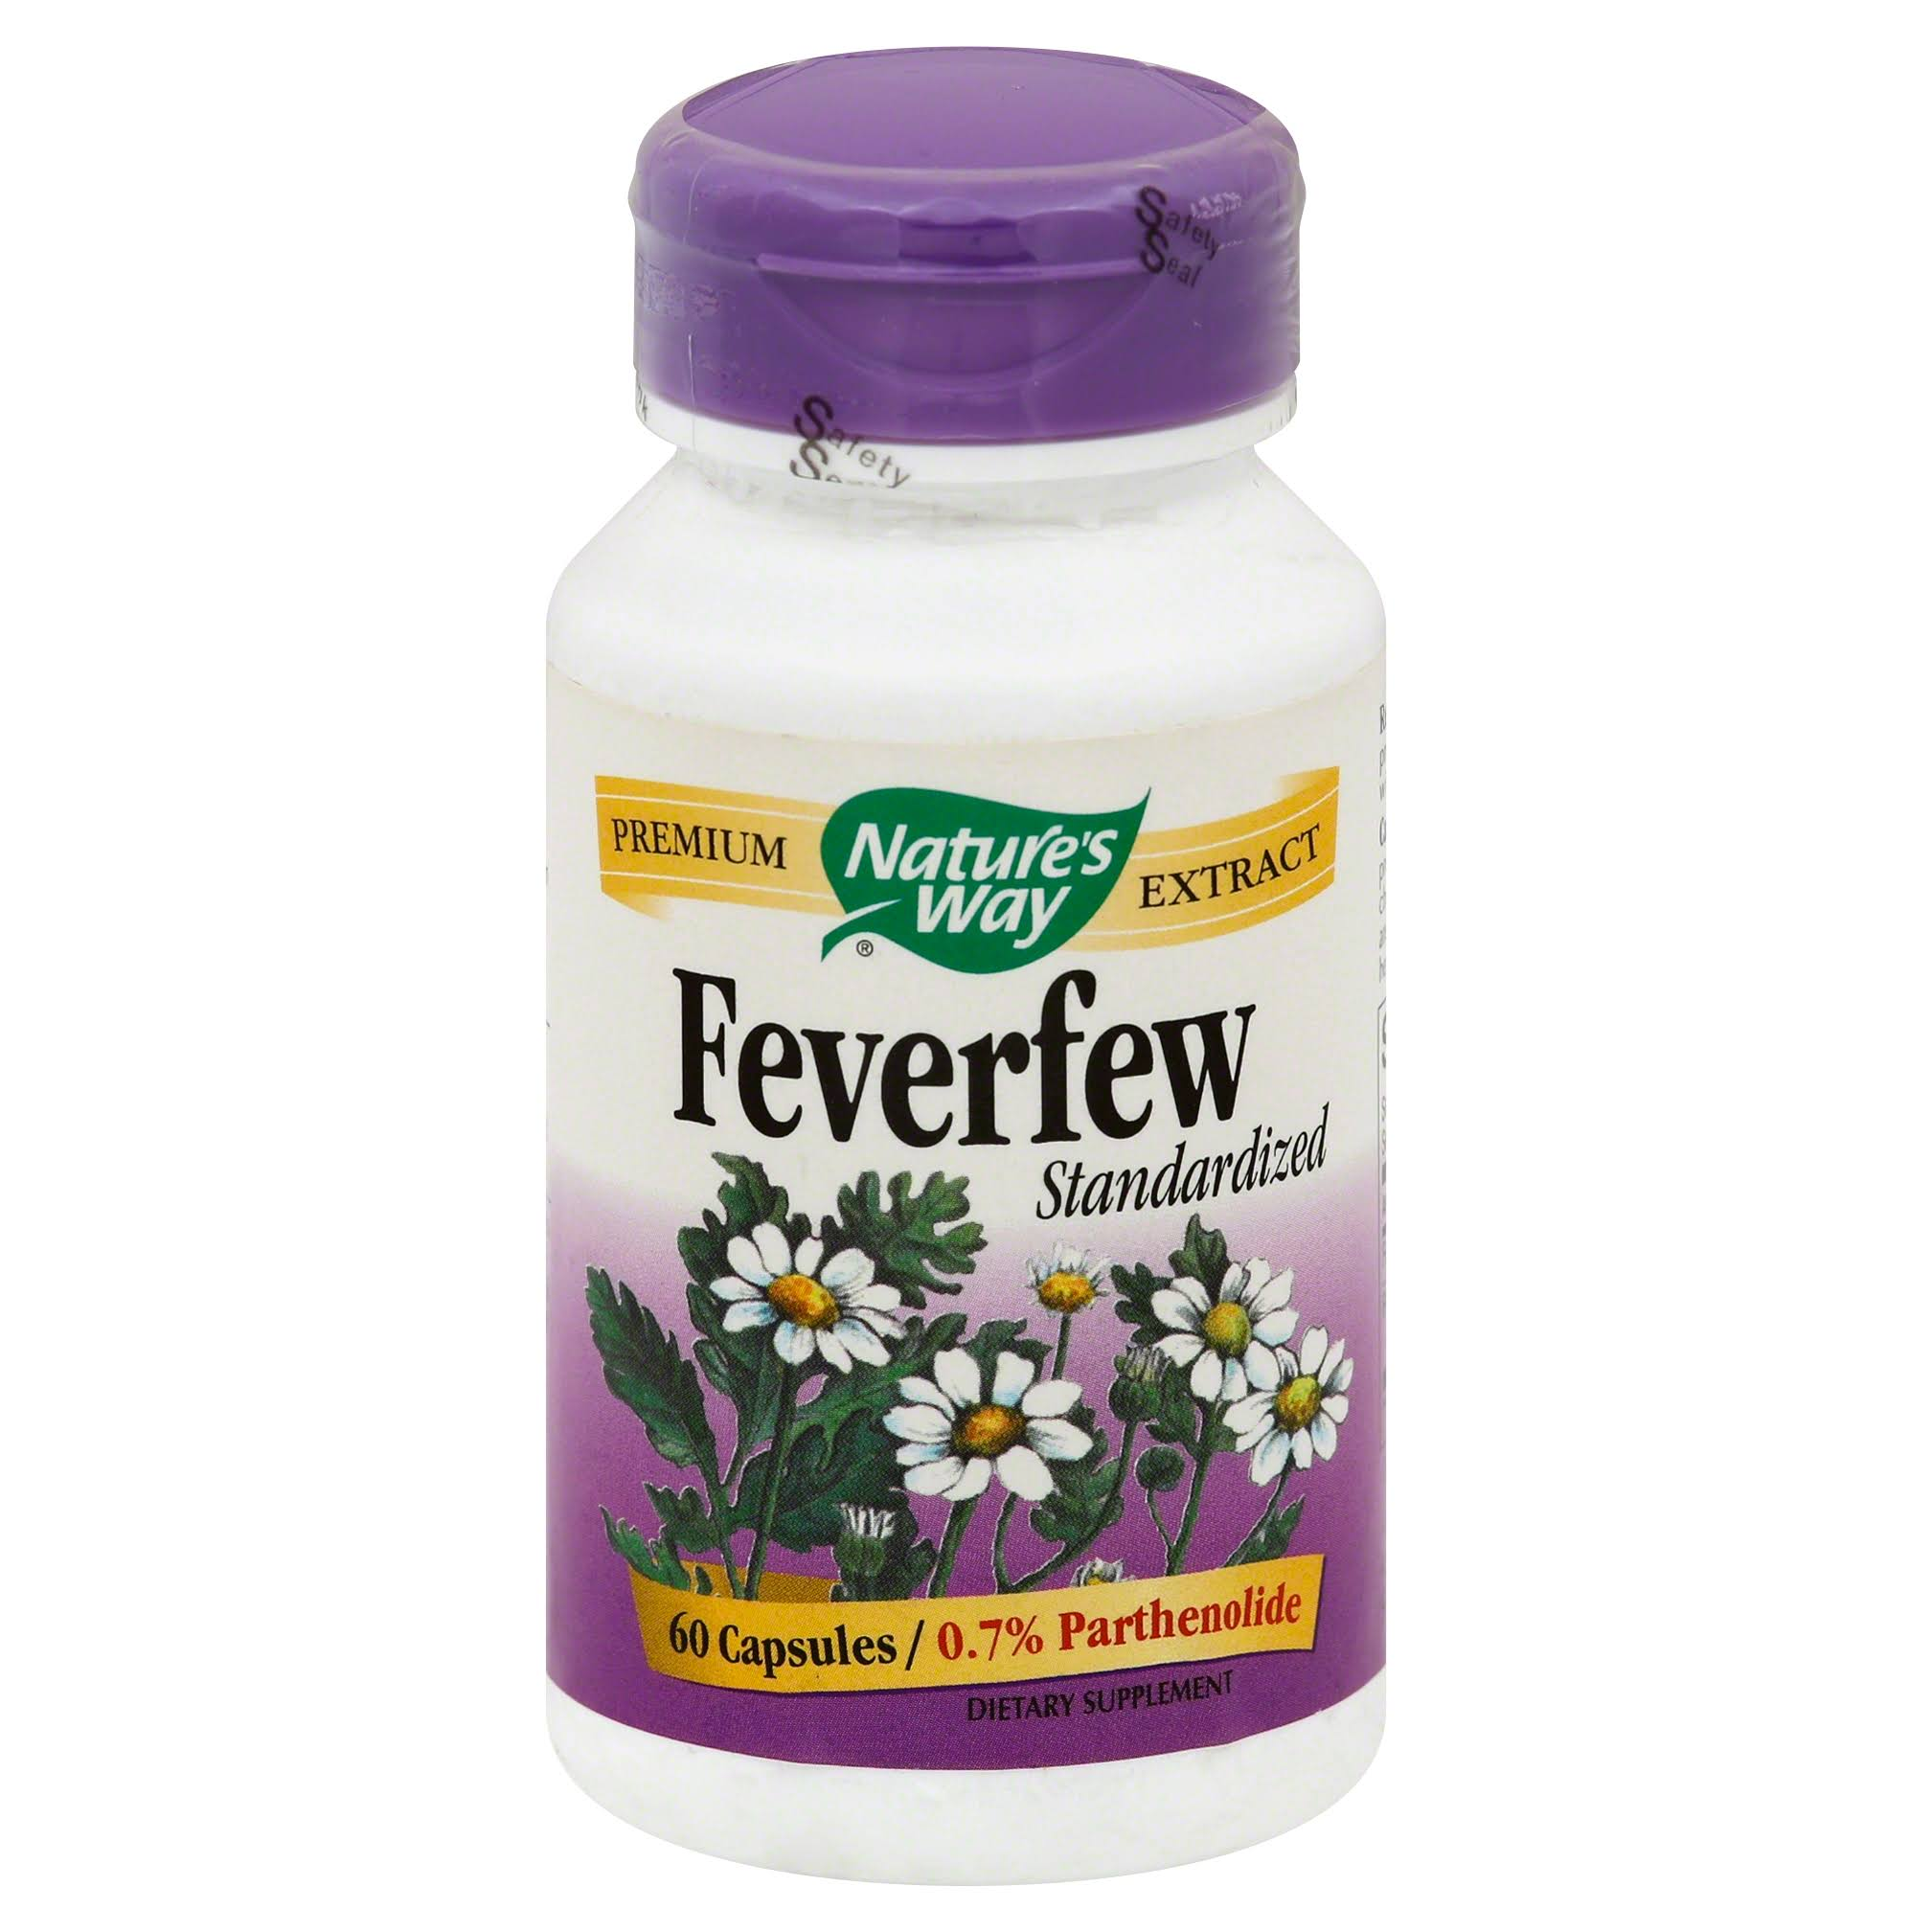 Nature's Way Feverfew Standardized Extract - 60 Capsules